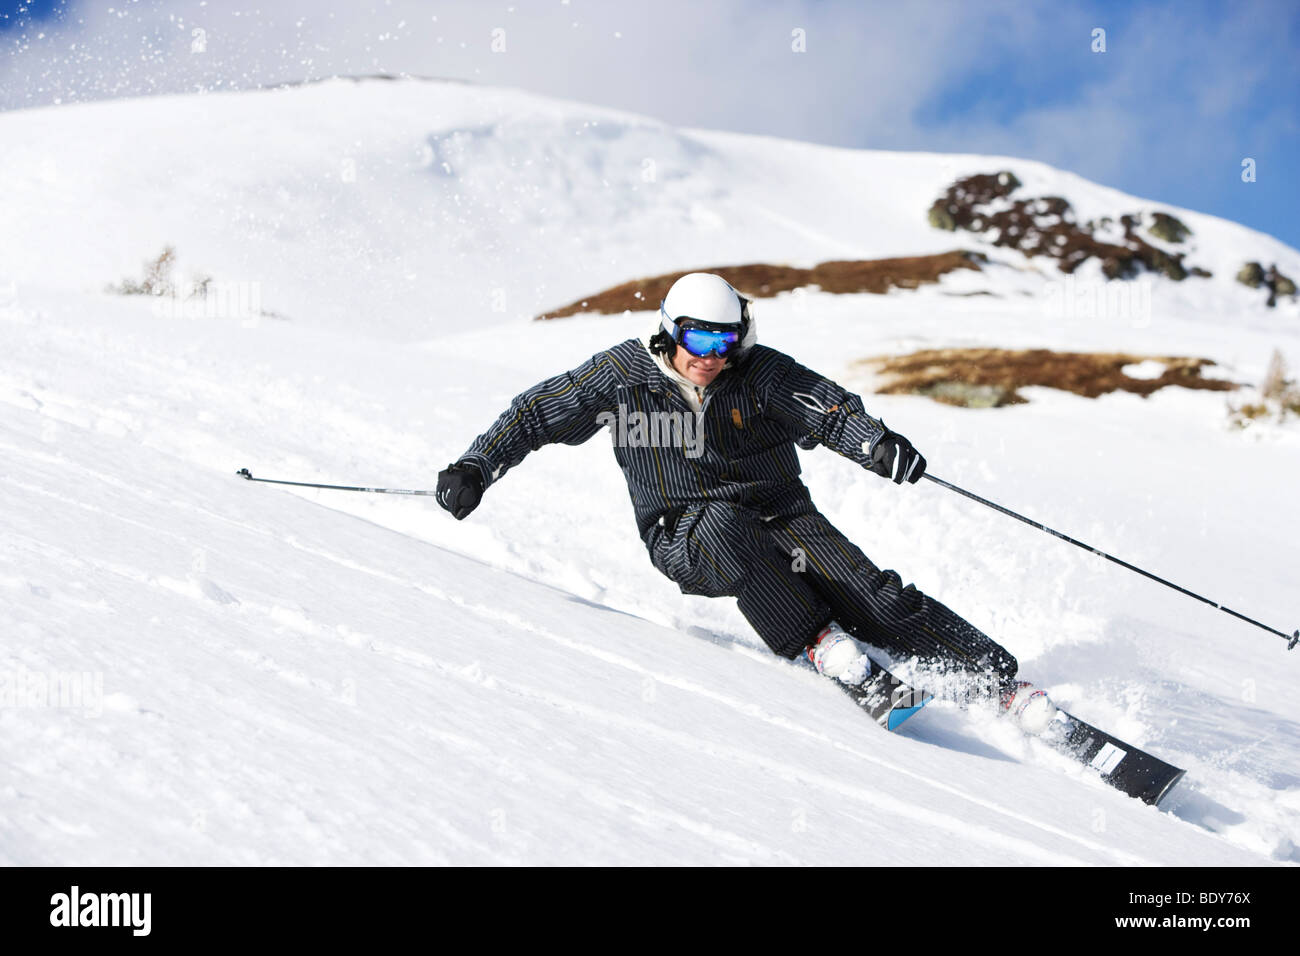 Man in black suit carving off piste. - Stock Image